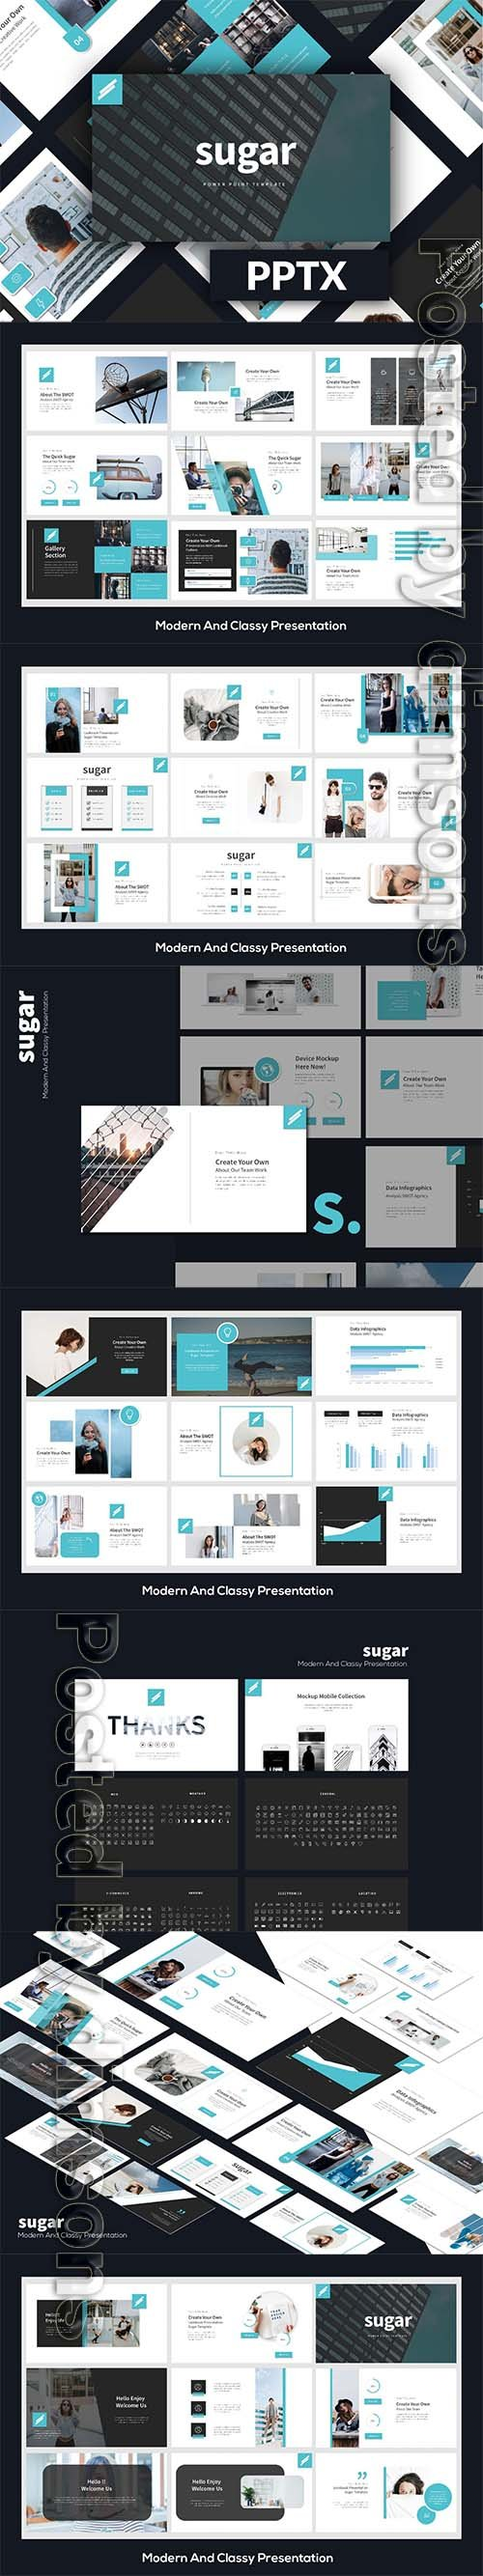 Sugar Business Powerpoint LS, Keynote and Google Slides Templates